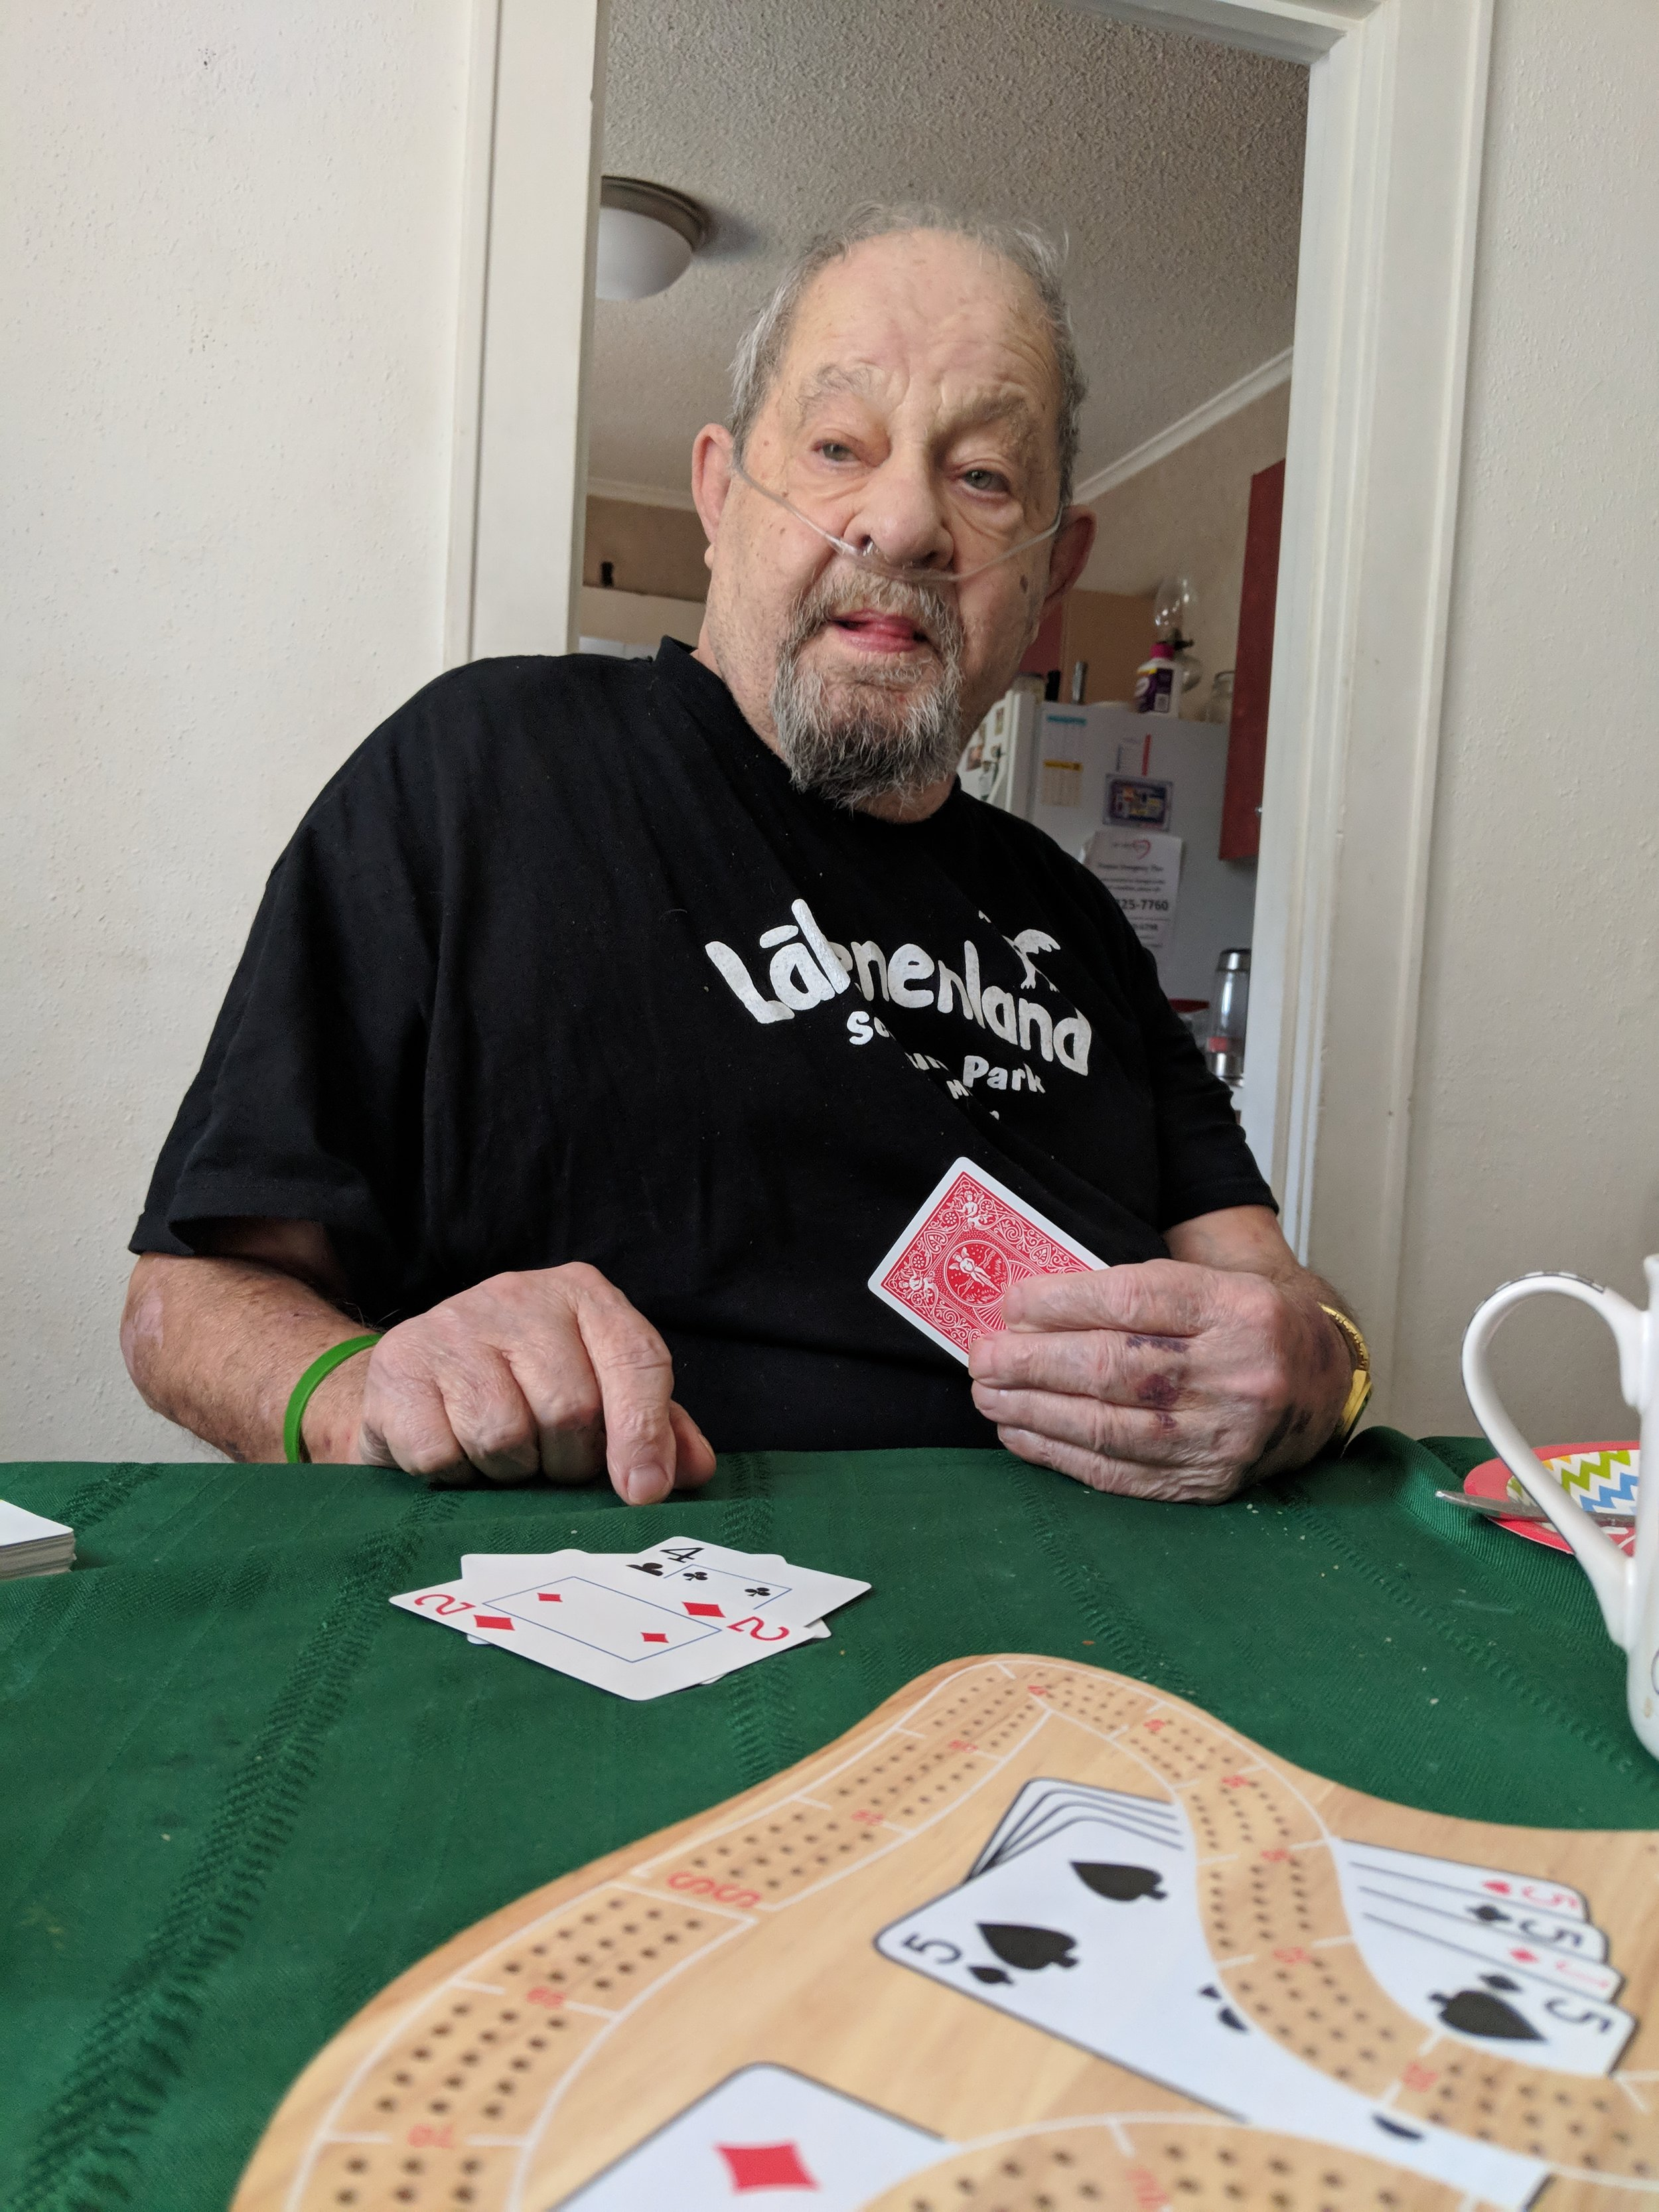 9. Cribbage - I visited my dad in October to go hunting. See this post about that trip. We got in a game of cribbage which is always important. My father passed away on December 20th. so this was our last game ever.